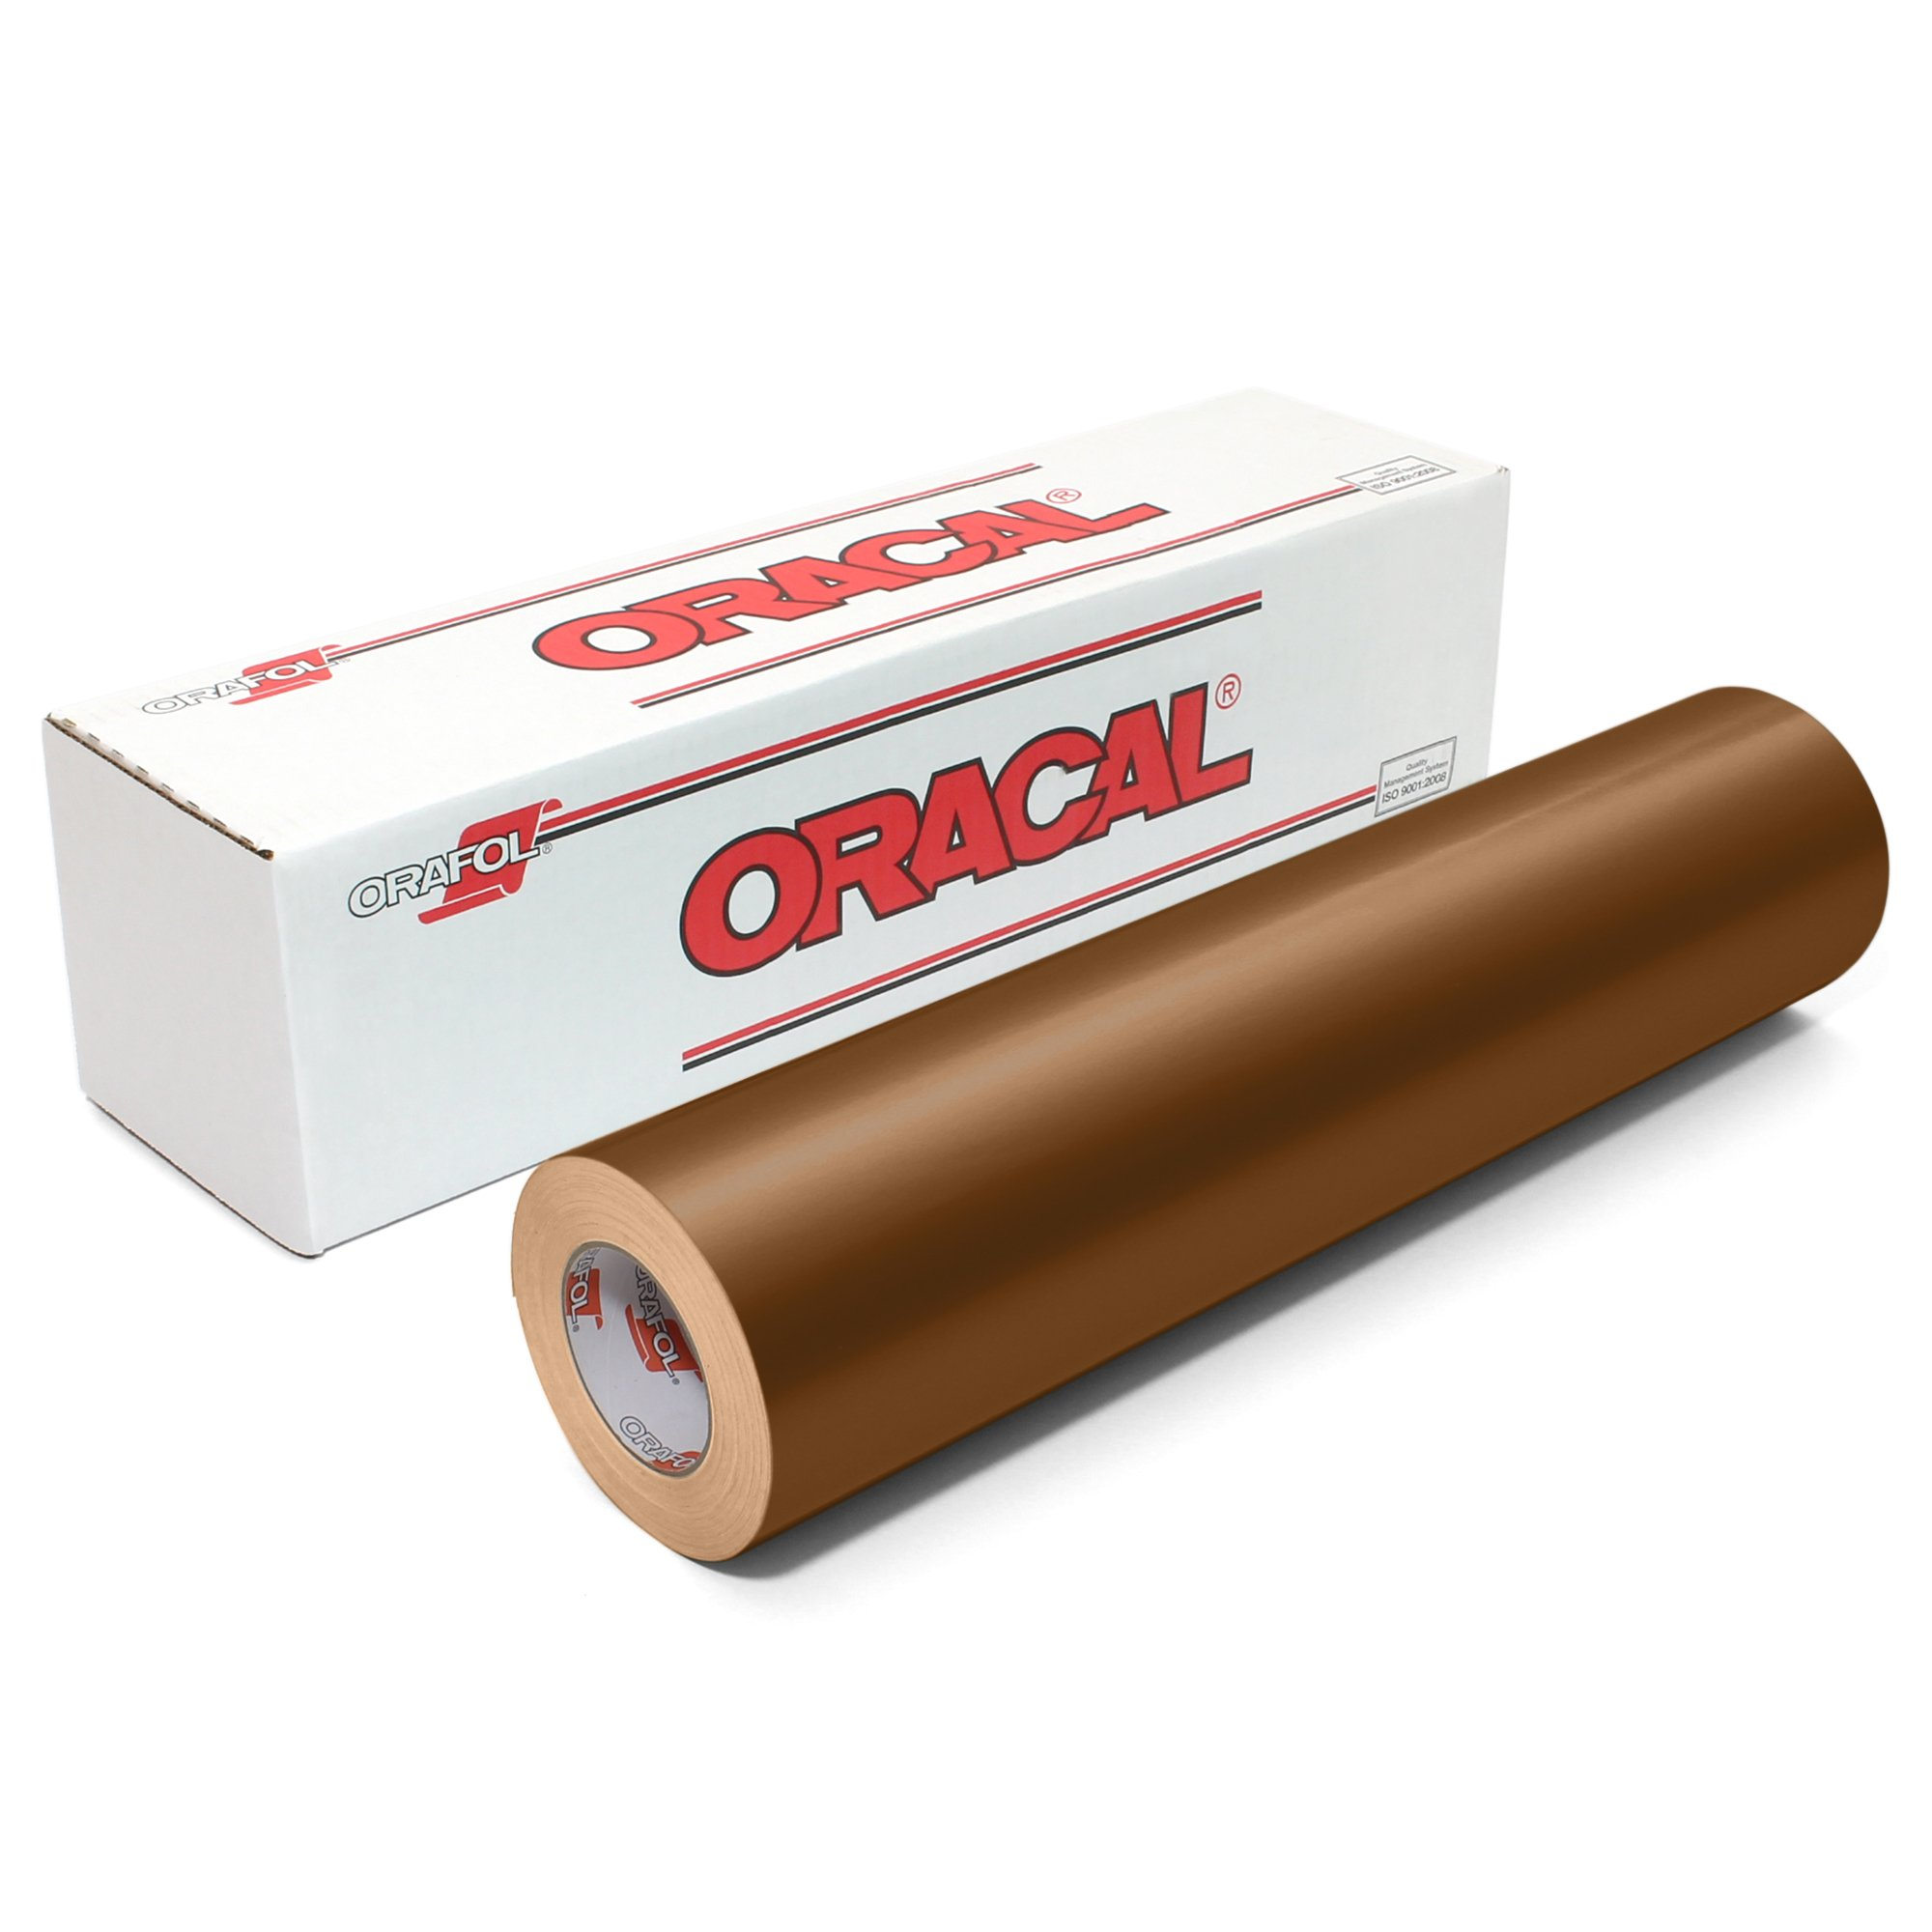 Oracal 651 Glossy Vinyl Roll 2 Sizes Available - Metallic Copper